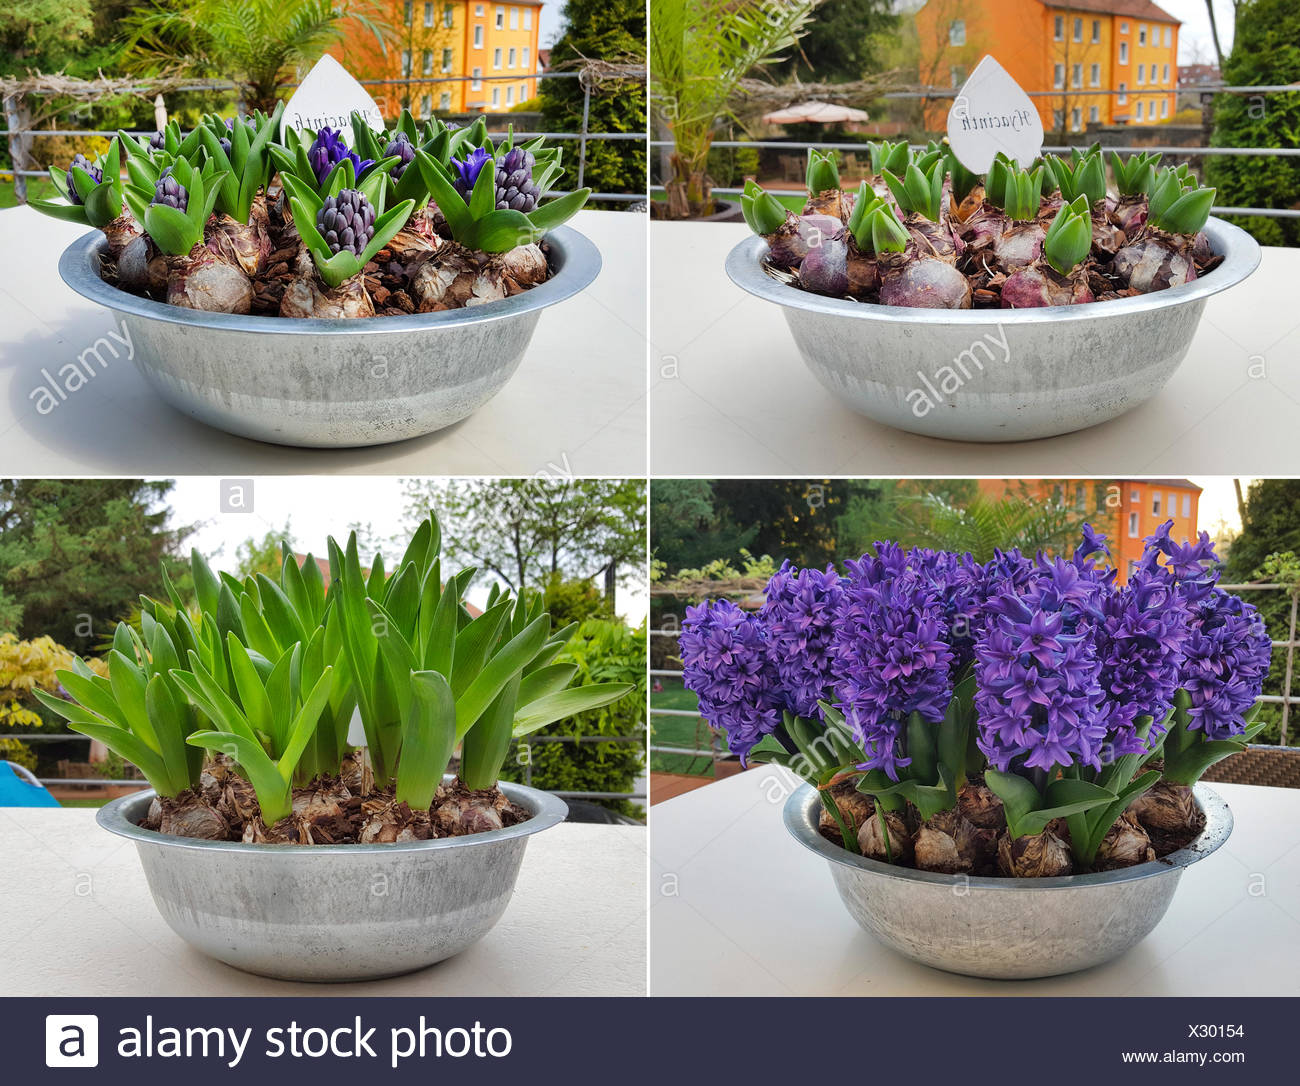 balkon blumen stock photos balkon blumen stock images alamy. Black Bedroom Furniture Sets. Home Design Ideas